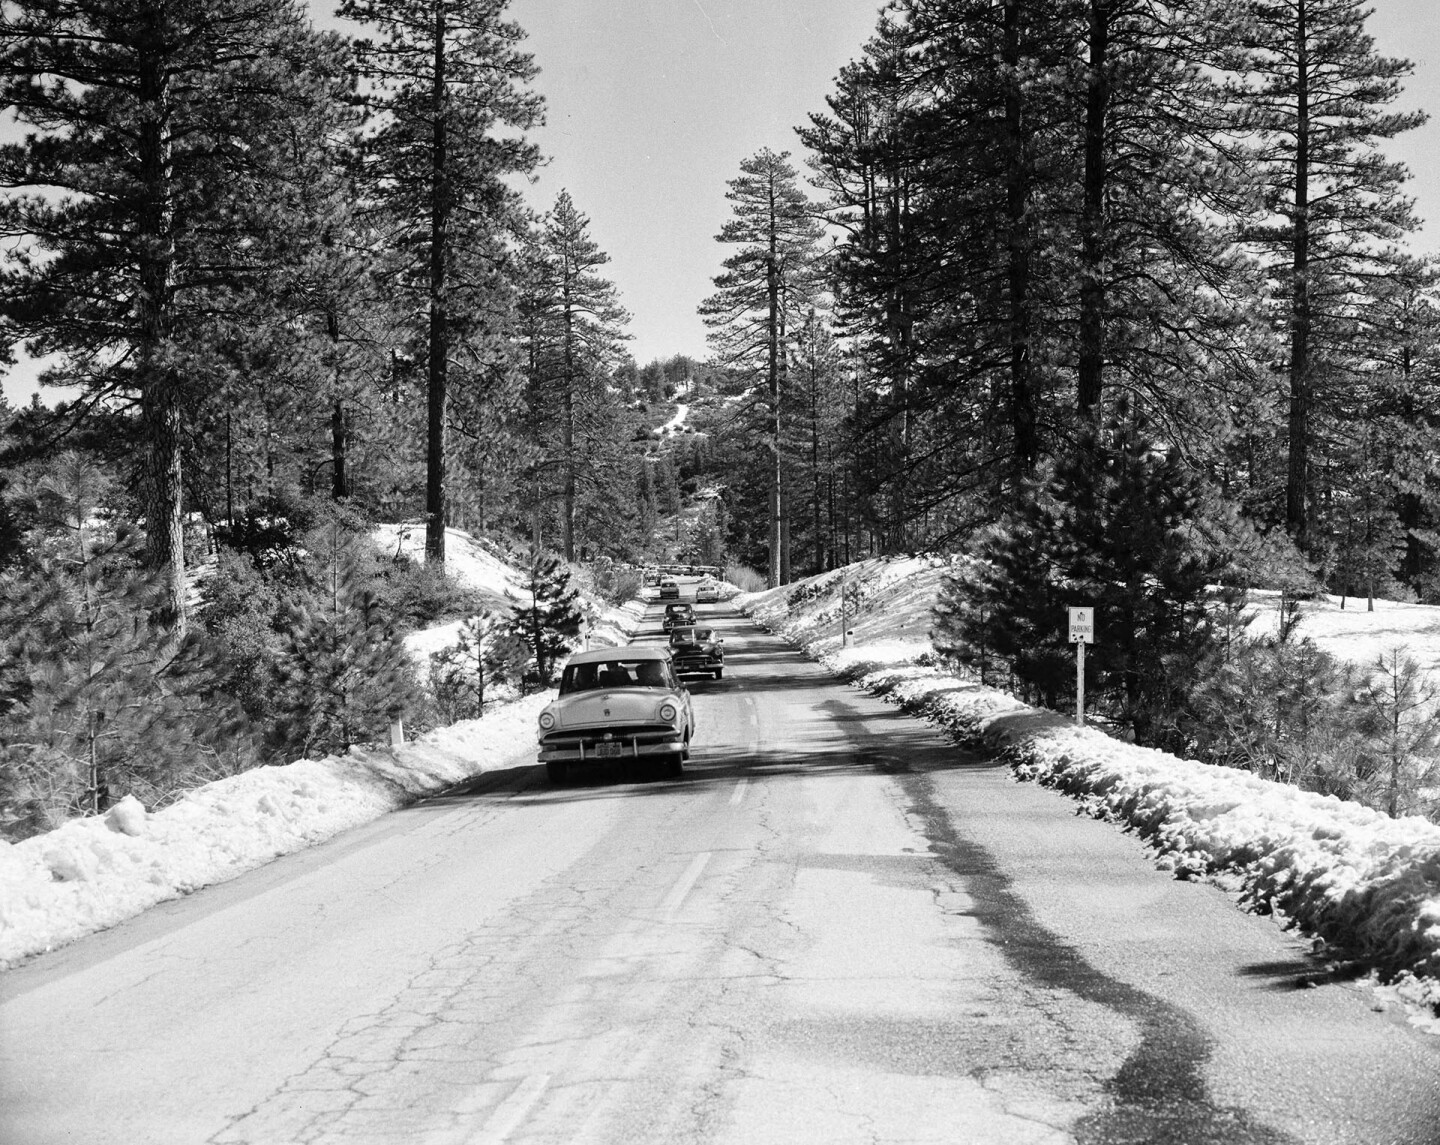 Angeles Crest Highway in the high country, 1956